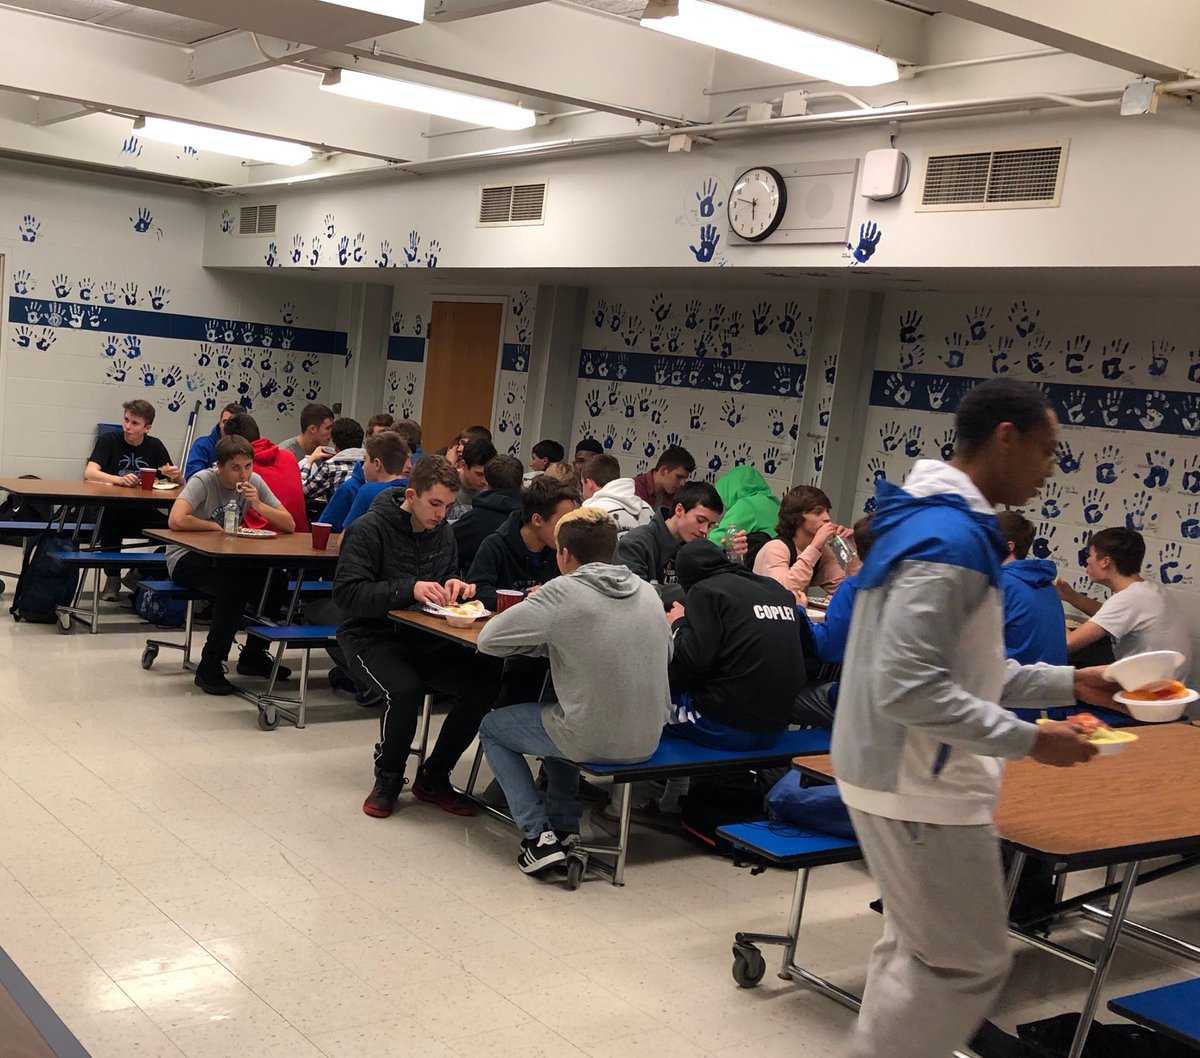 Thank you to our junior parents for hosting our team meal this week. Also thank you to The Beer Barrel for providing our main course. Delicious!! #Fellowship #WinTheMoment #BluePride<br>http://pic.twitter.com/jfxITfv5pP